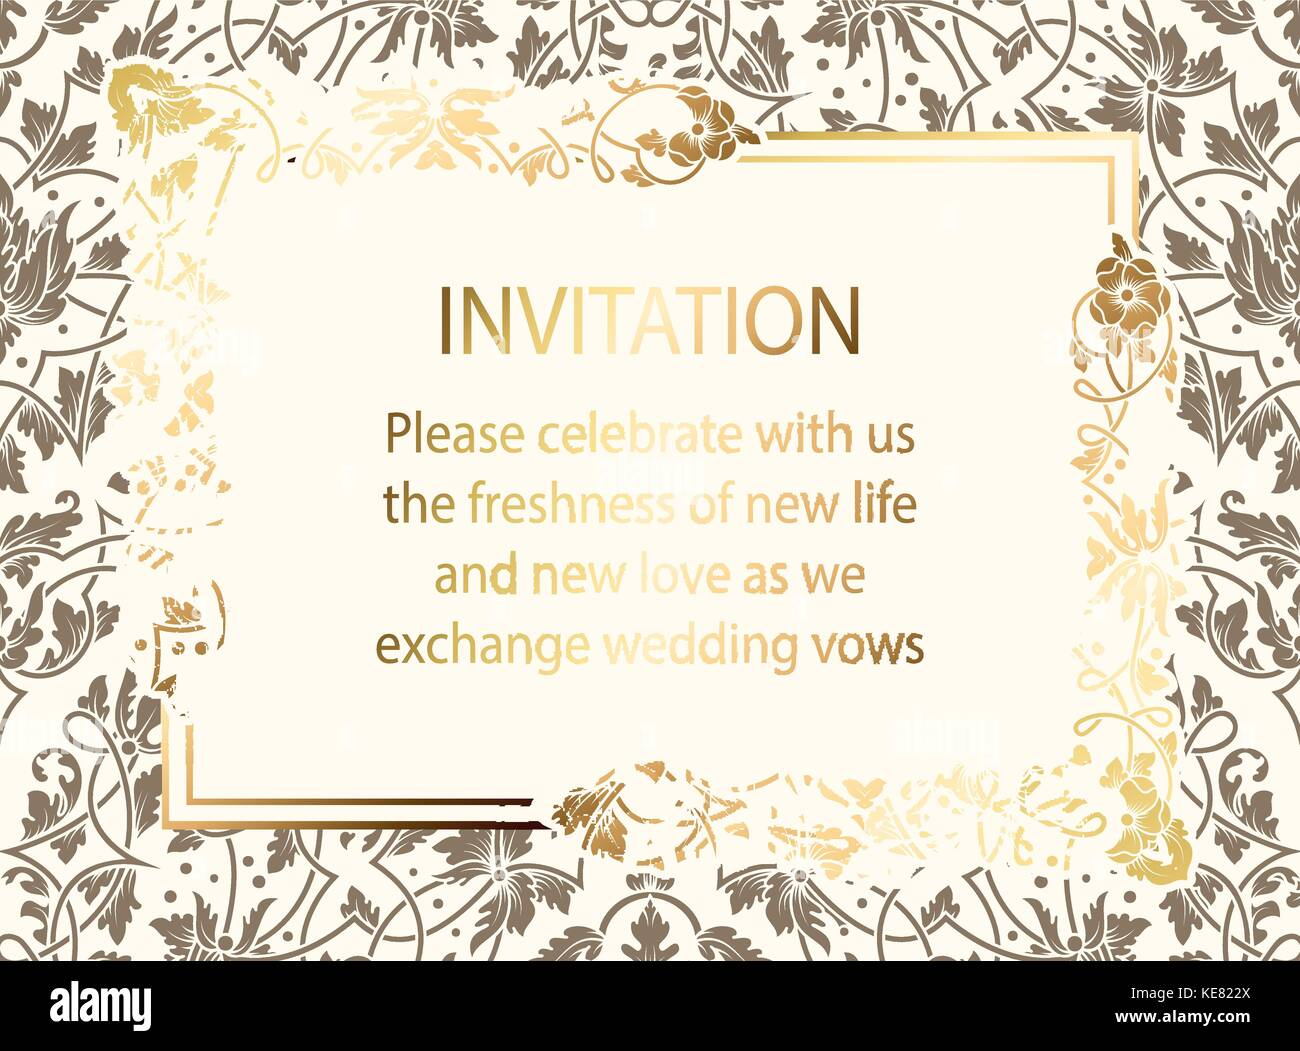 Intricate baroque luxury wedding invitation card rich gold decor intricate baroque luxury wedding invitation card rich gold decor on beige background with frame and monicamarmolfo Gallery